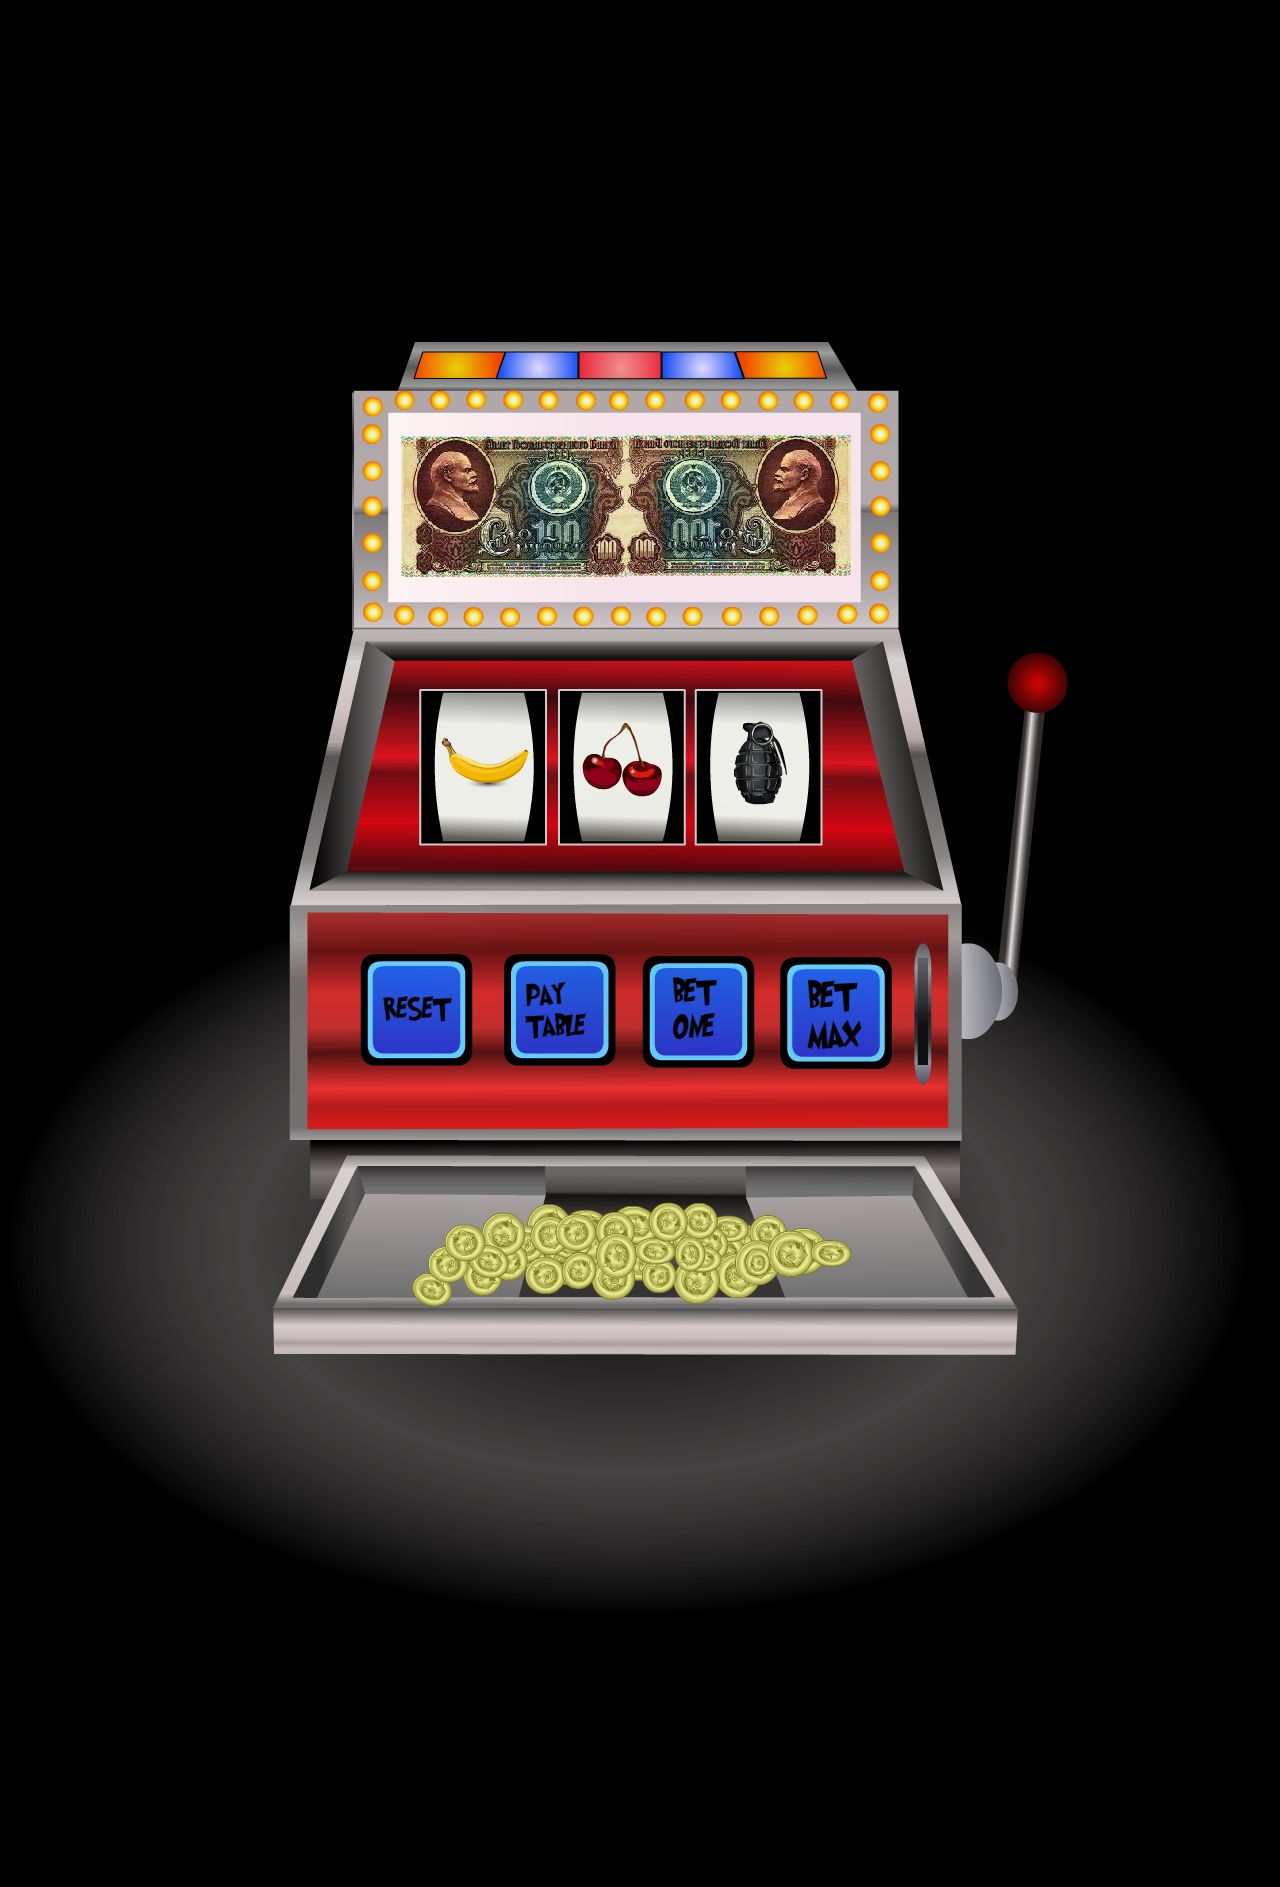 Pokemon red slot machine strategy